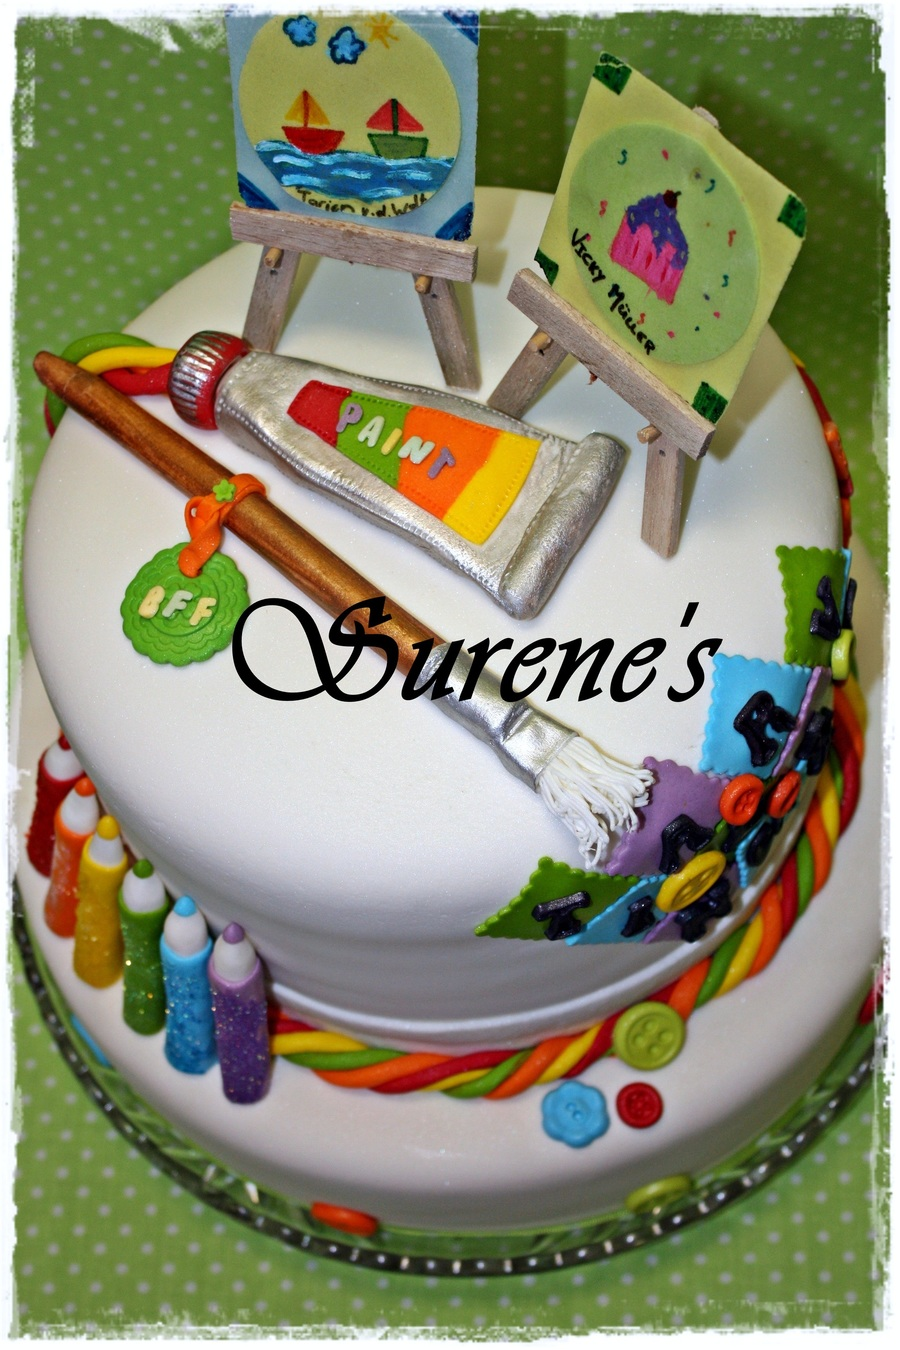 Arts & Crafts Cake on Cake Central